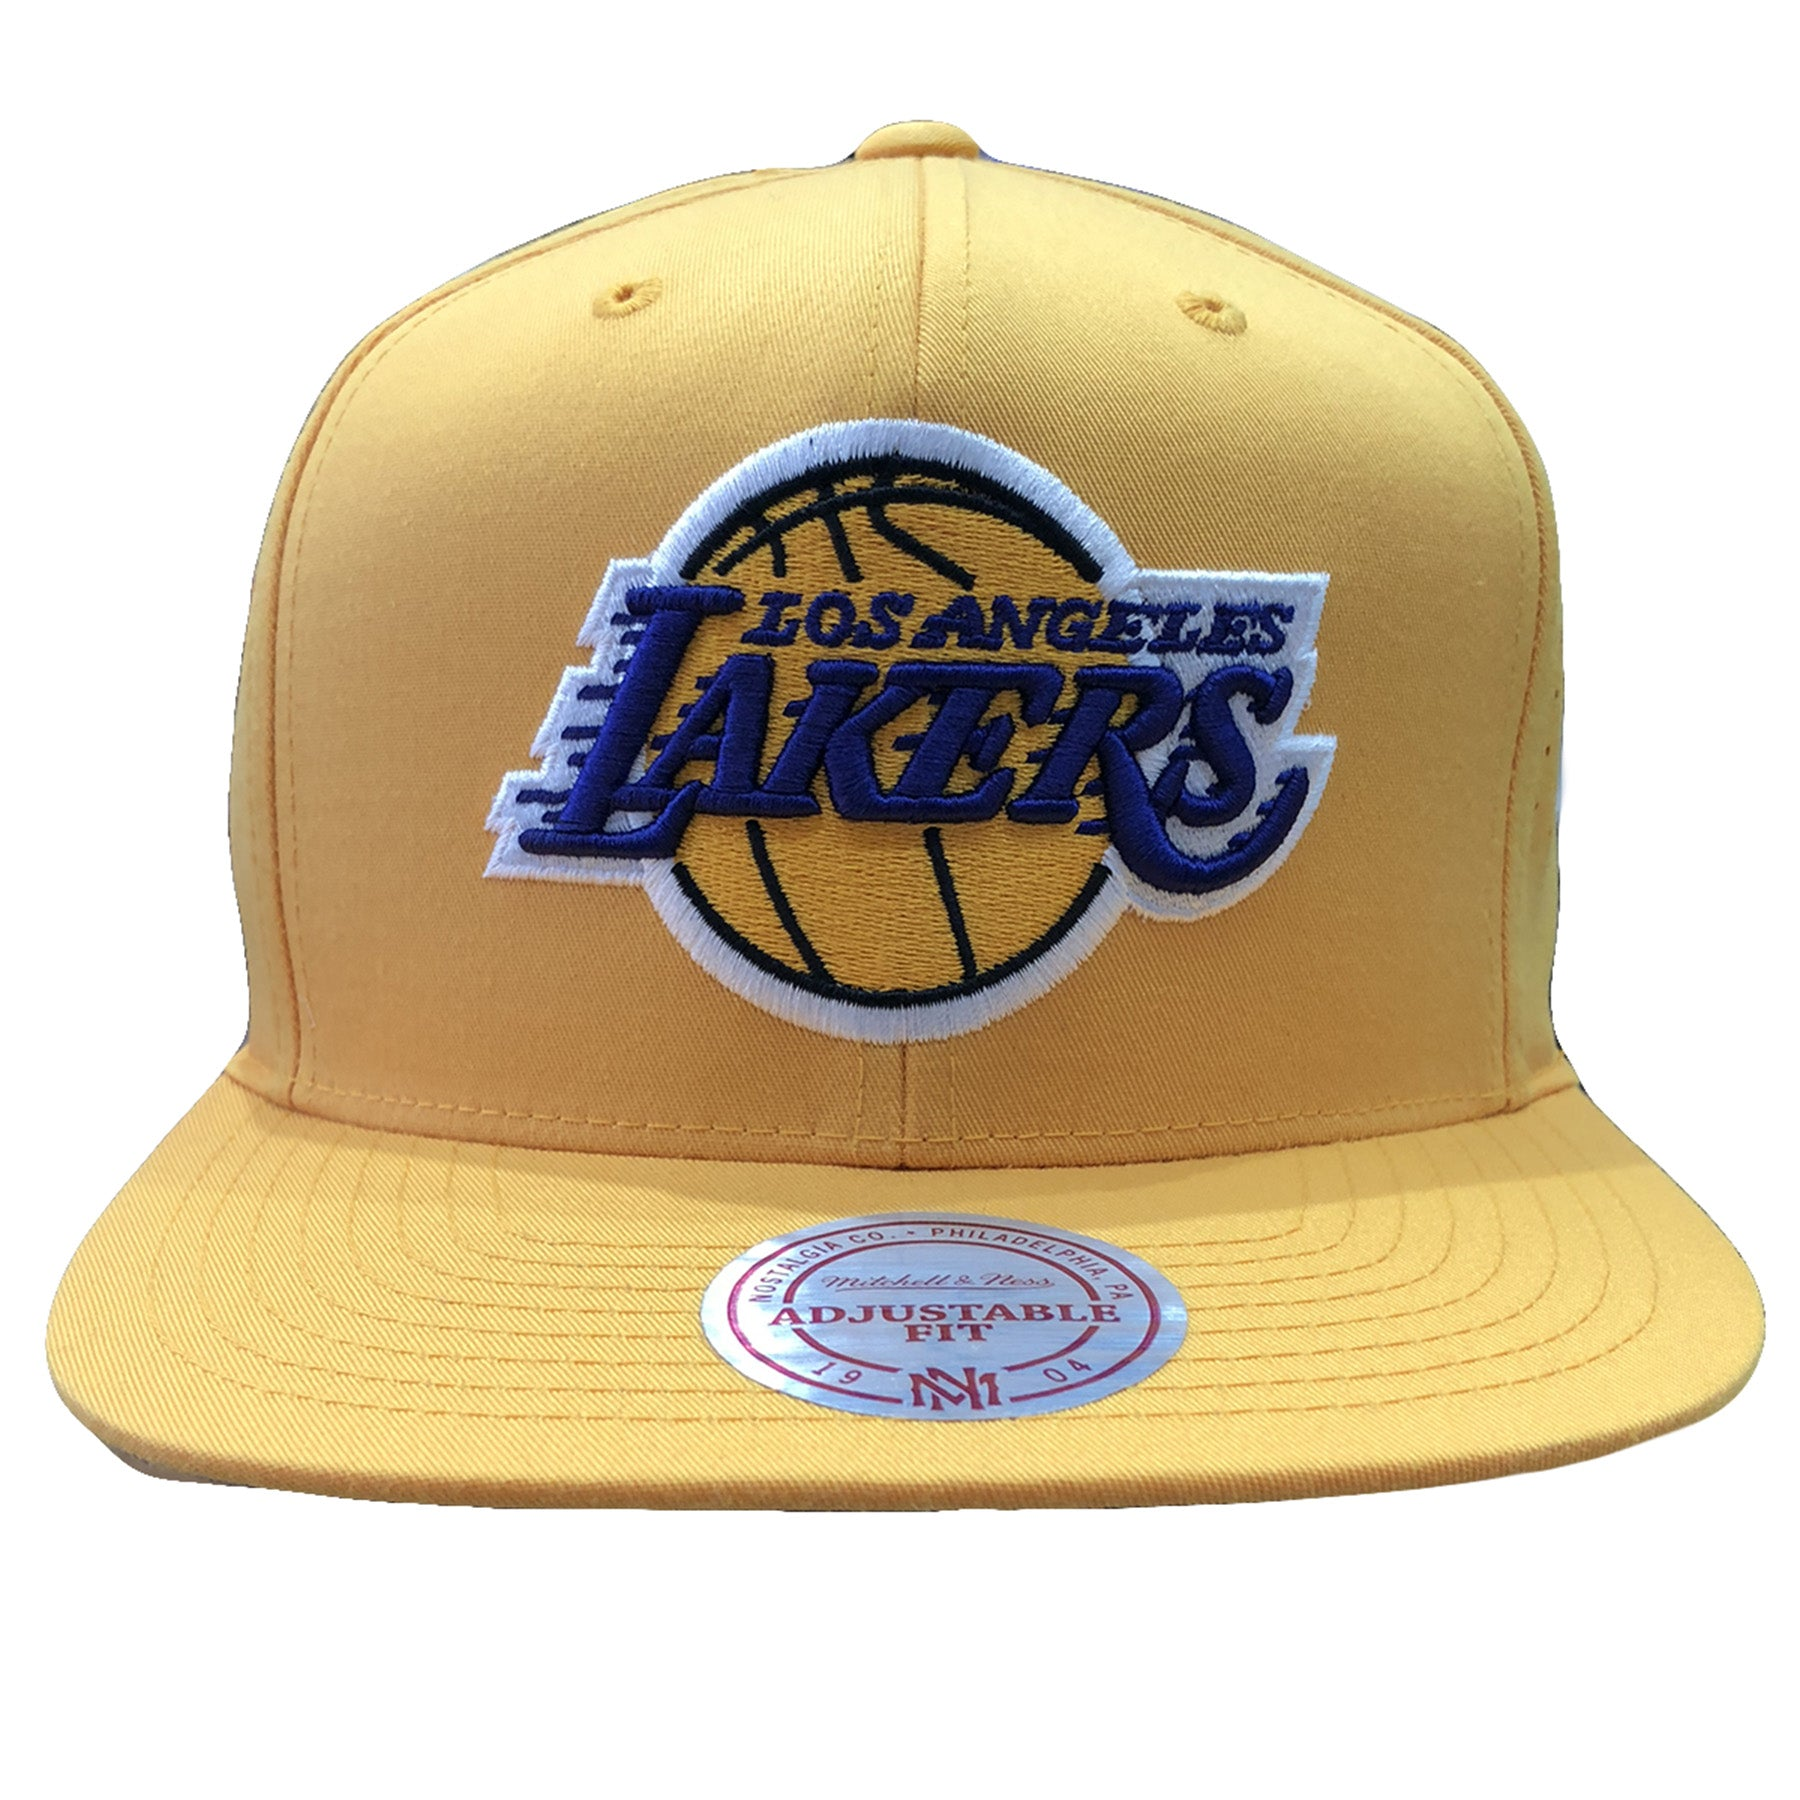 86c8f90928008 Embroidered on the front of the Los Angeles Lakers snapback hat is the Lakers  logo in